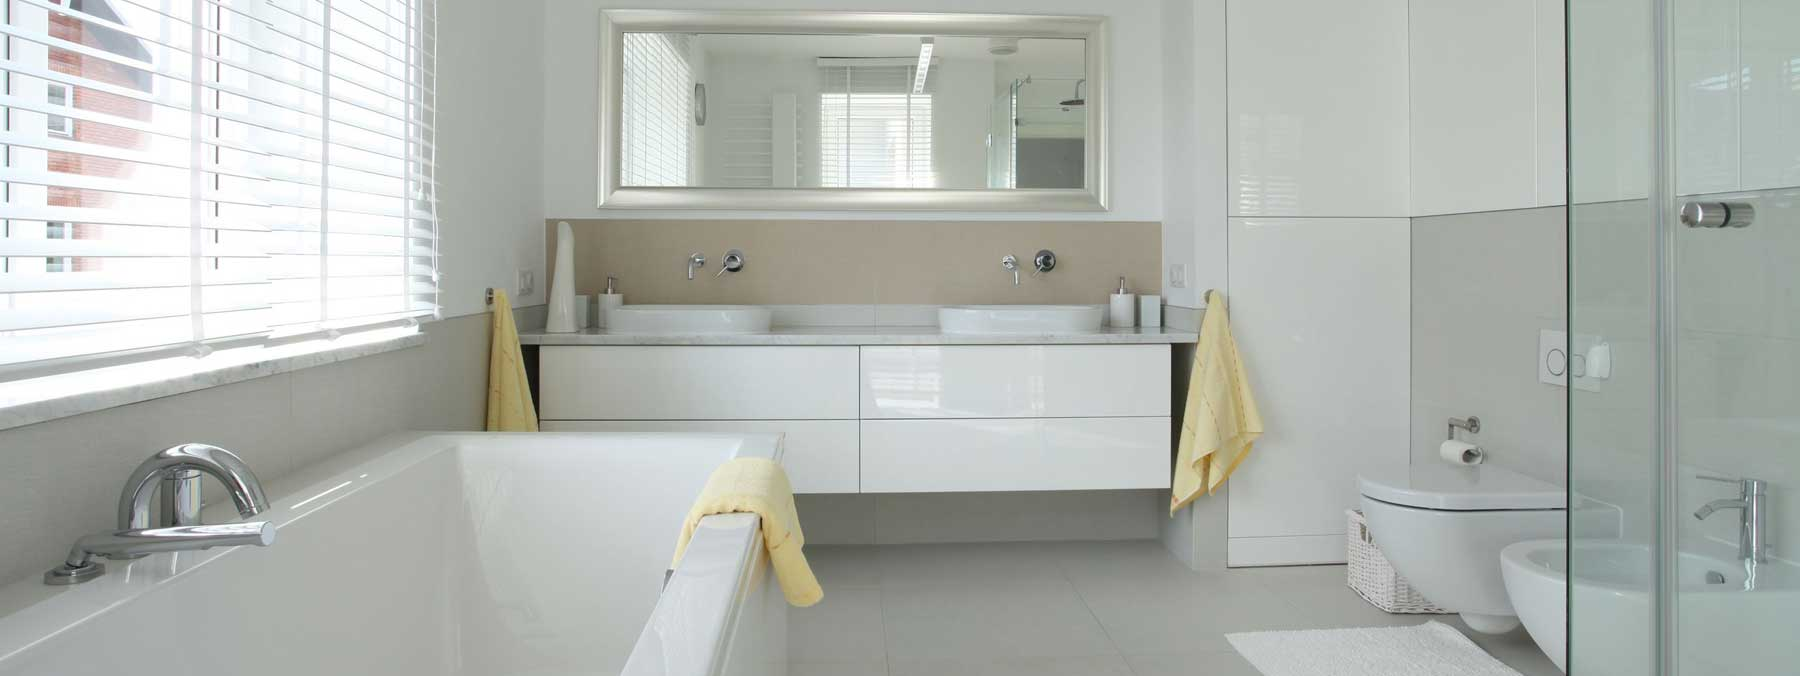 New 50 bathroom renovations sydney cost design ideas of for Bathroom renovations